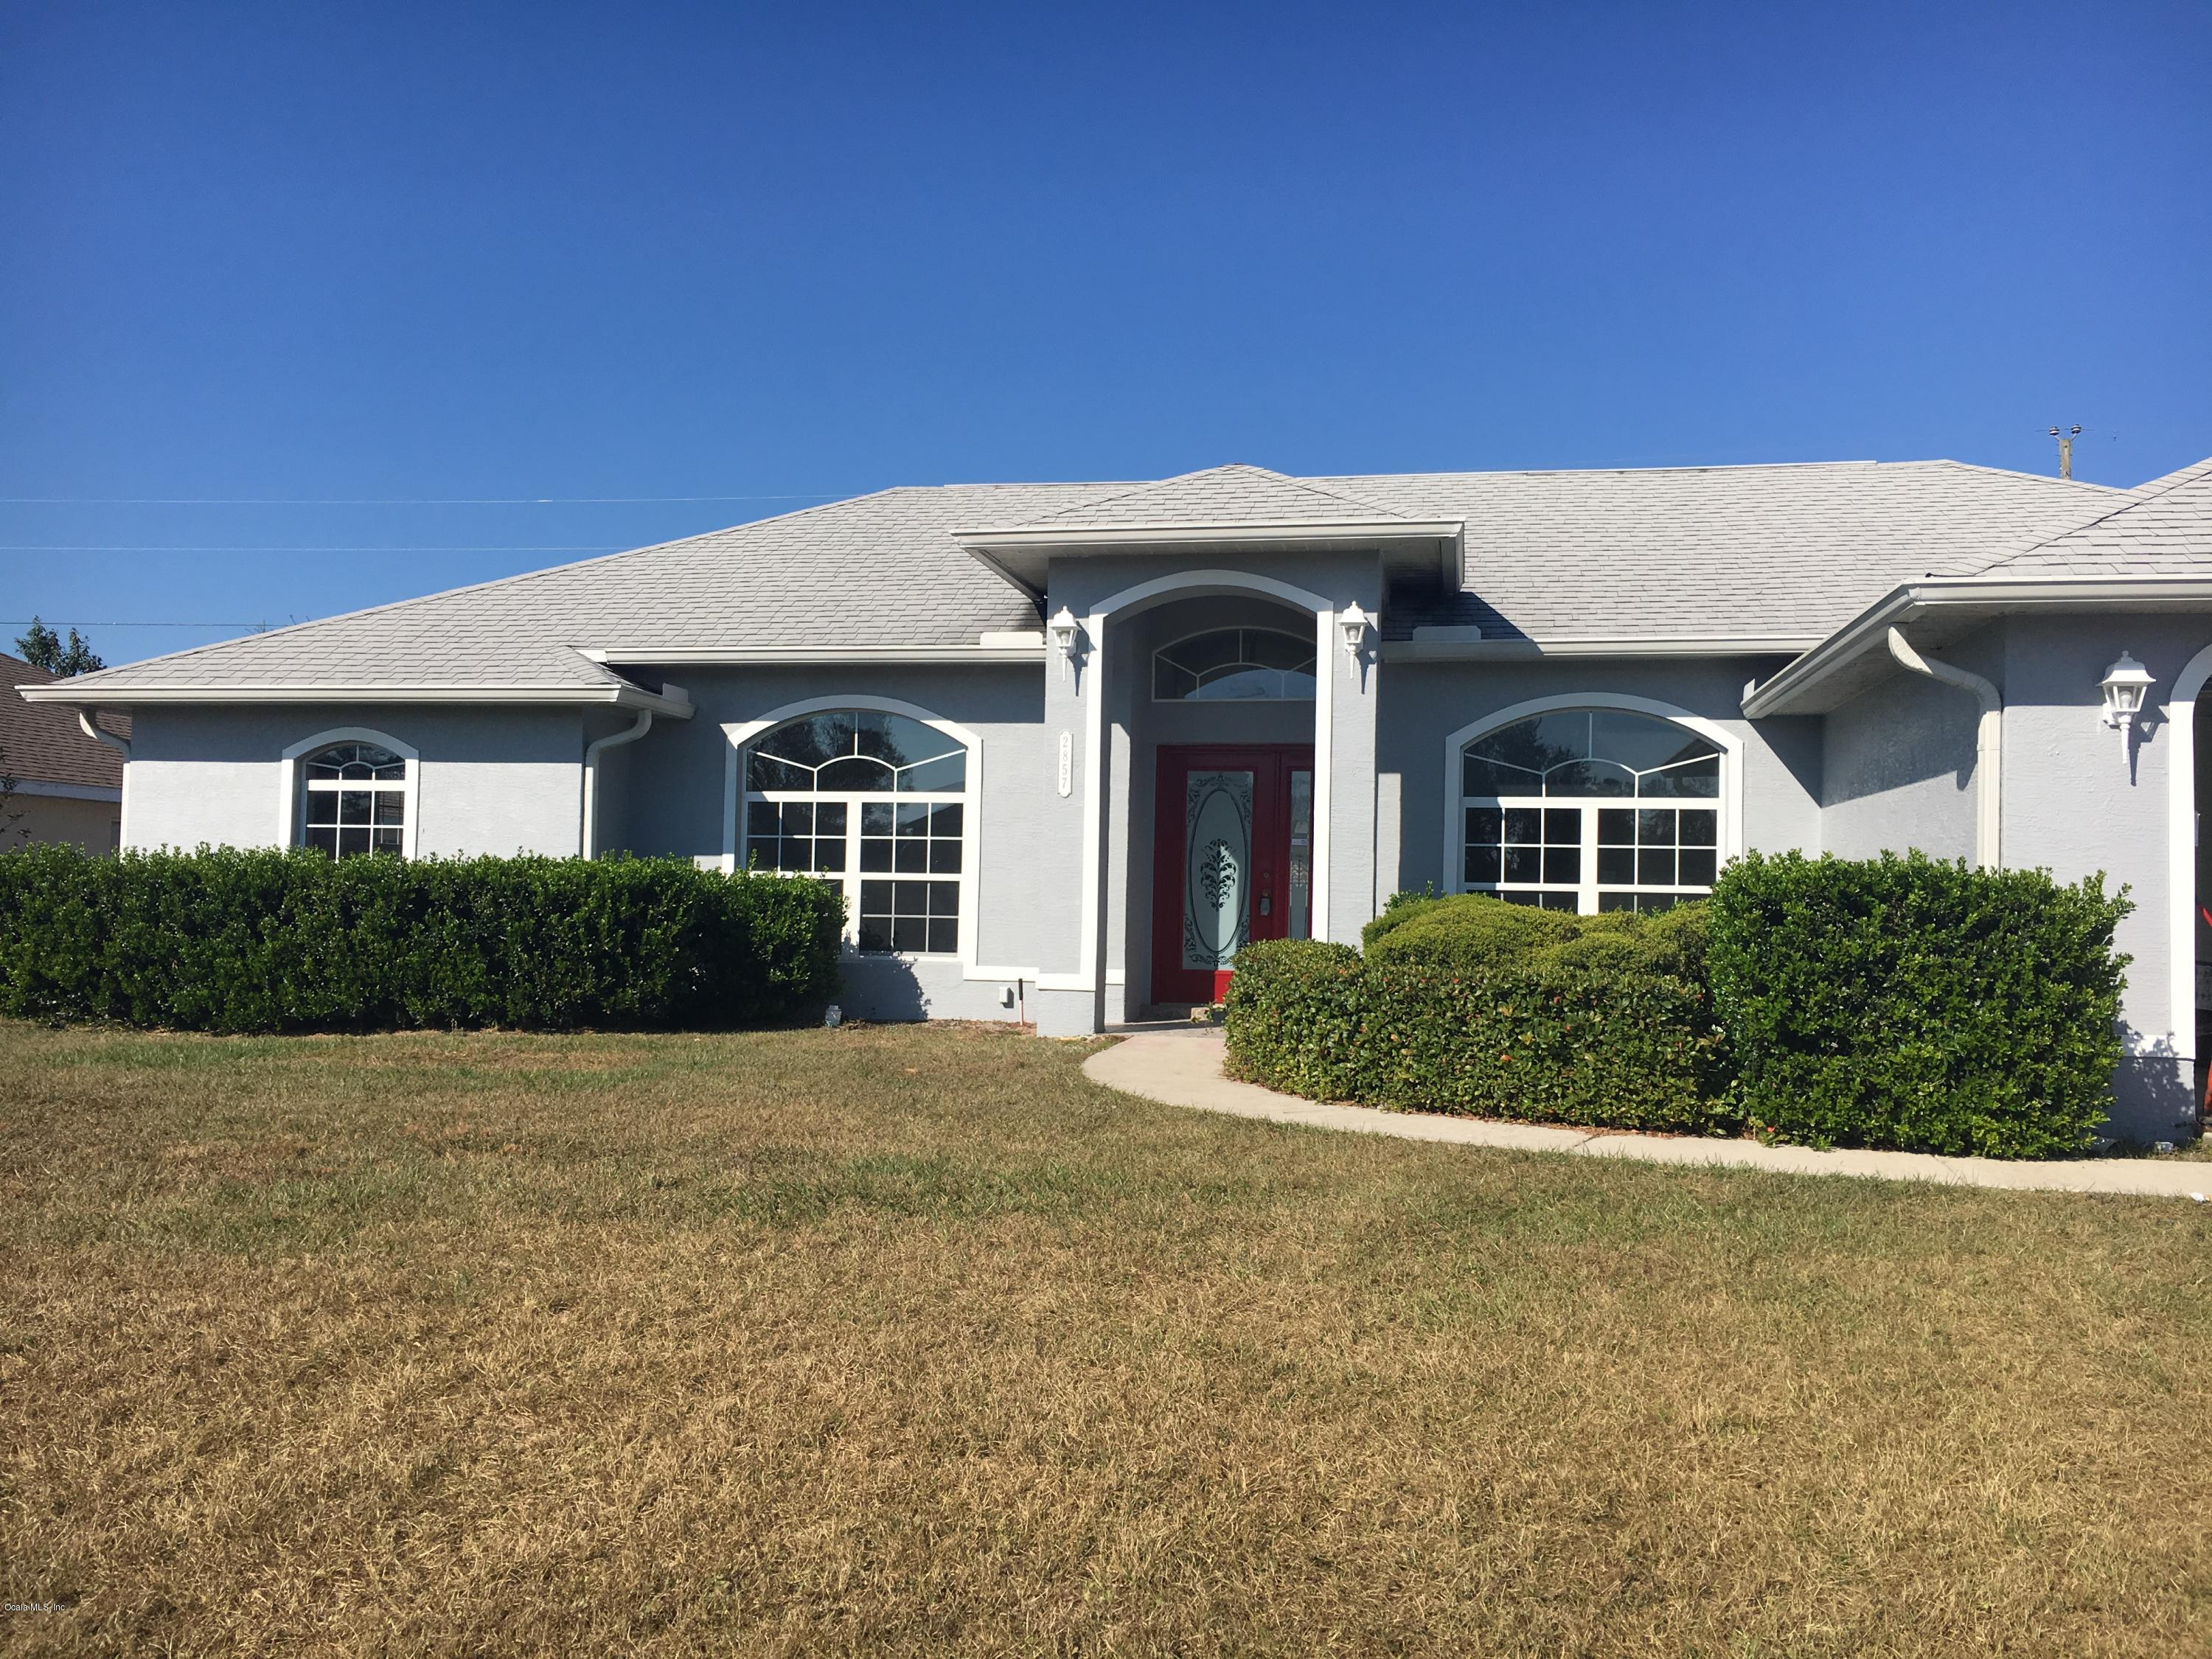 2857 SW 142ND LANE, OCALA, FL 34473